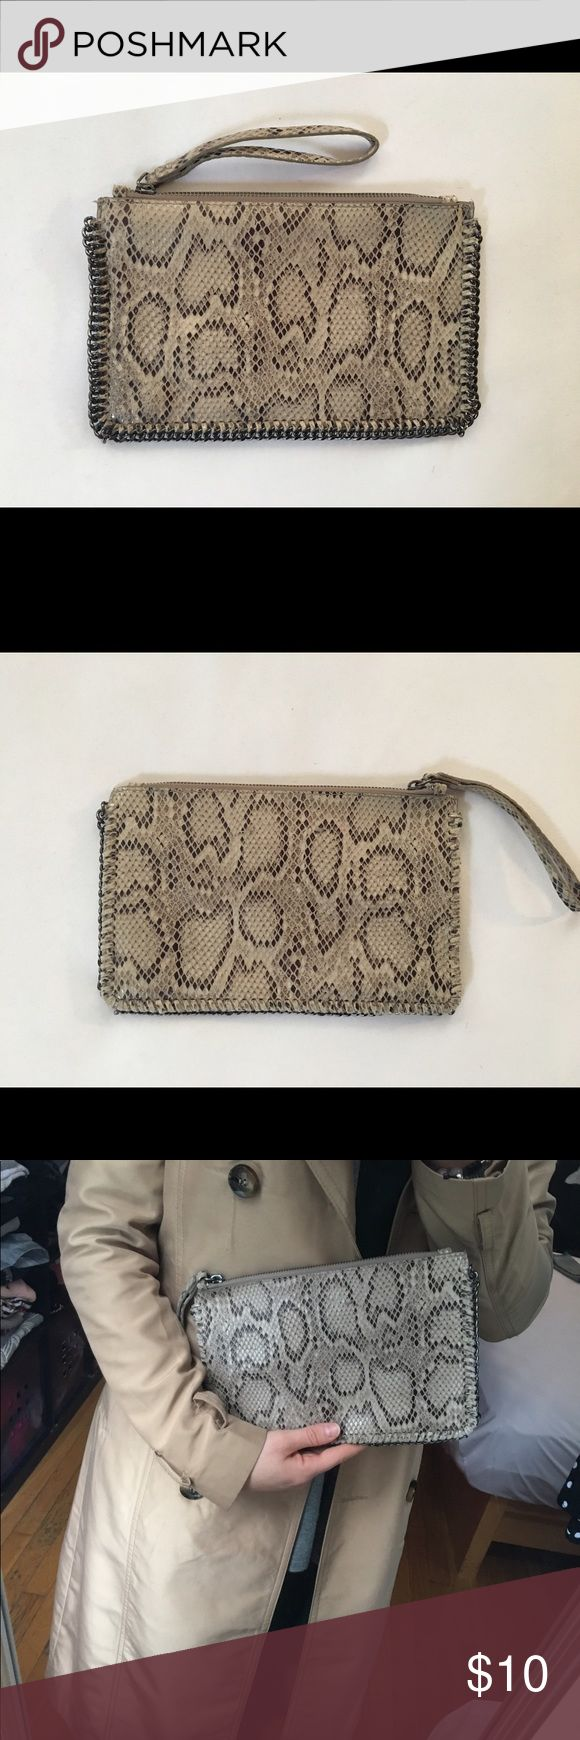 Mango Clutch with snake pattern Small clutch with zipper in (fake) snake fabric from Mango Mango Bags Clutches & Wristlets